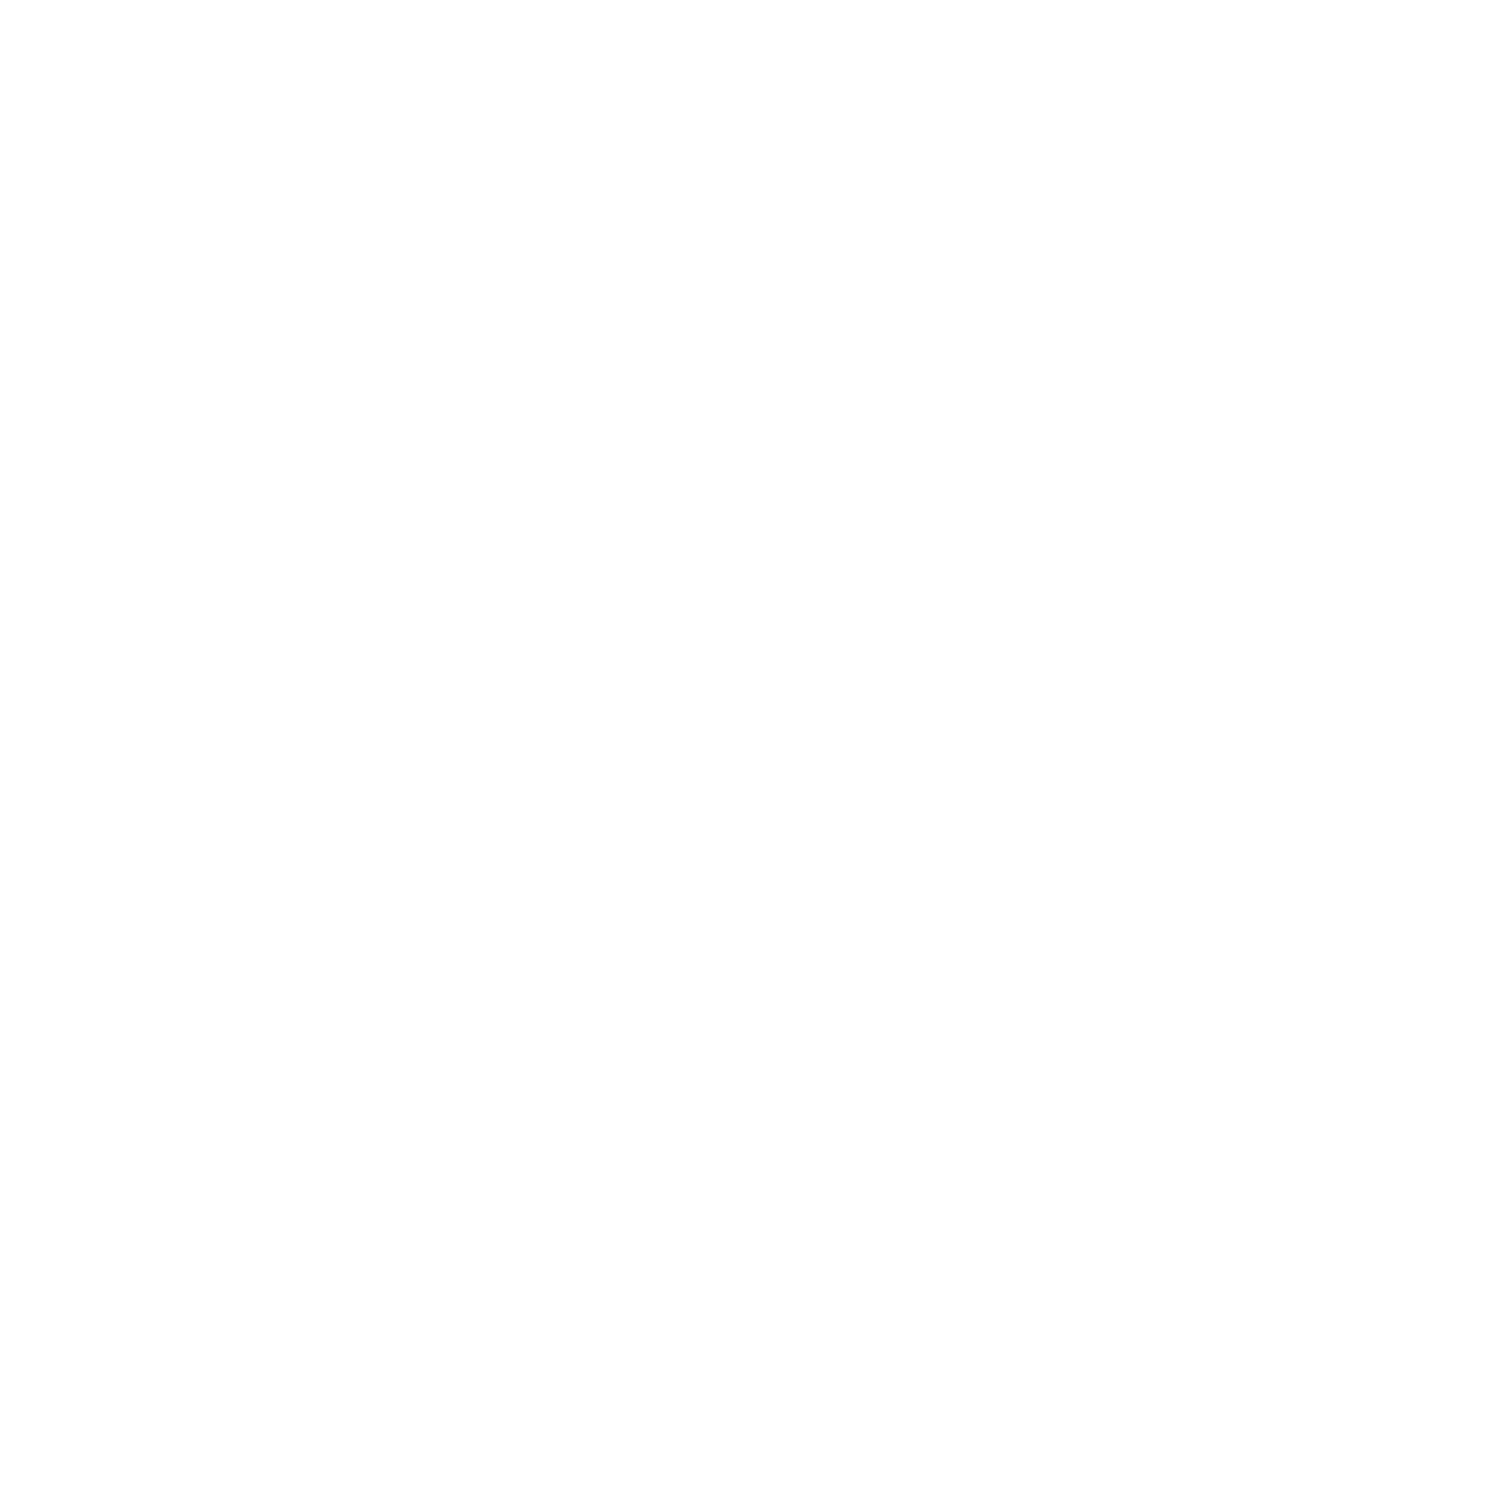 Lloyd's Sweet Shoppe, LLC